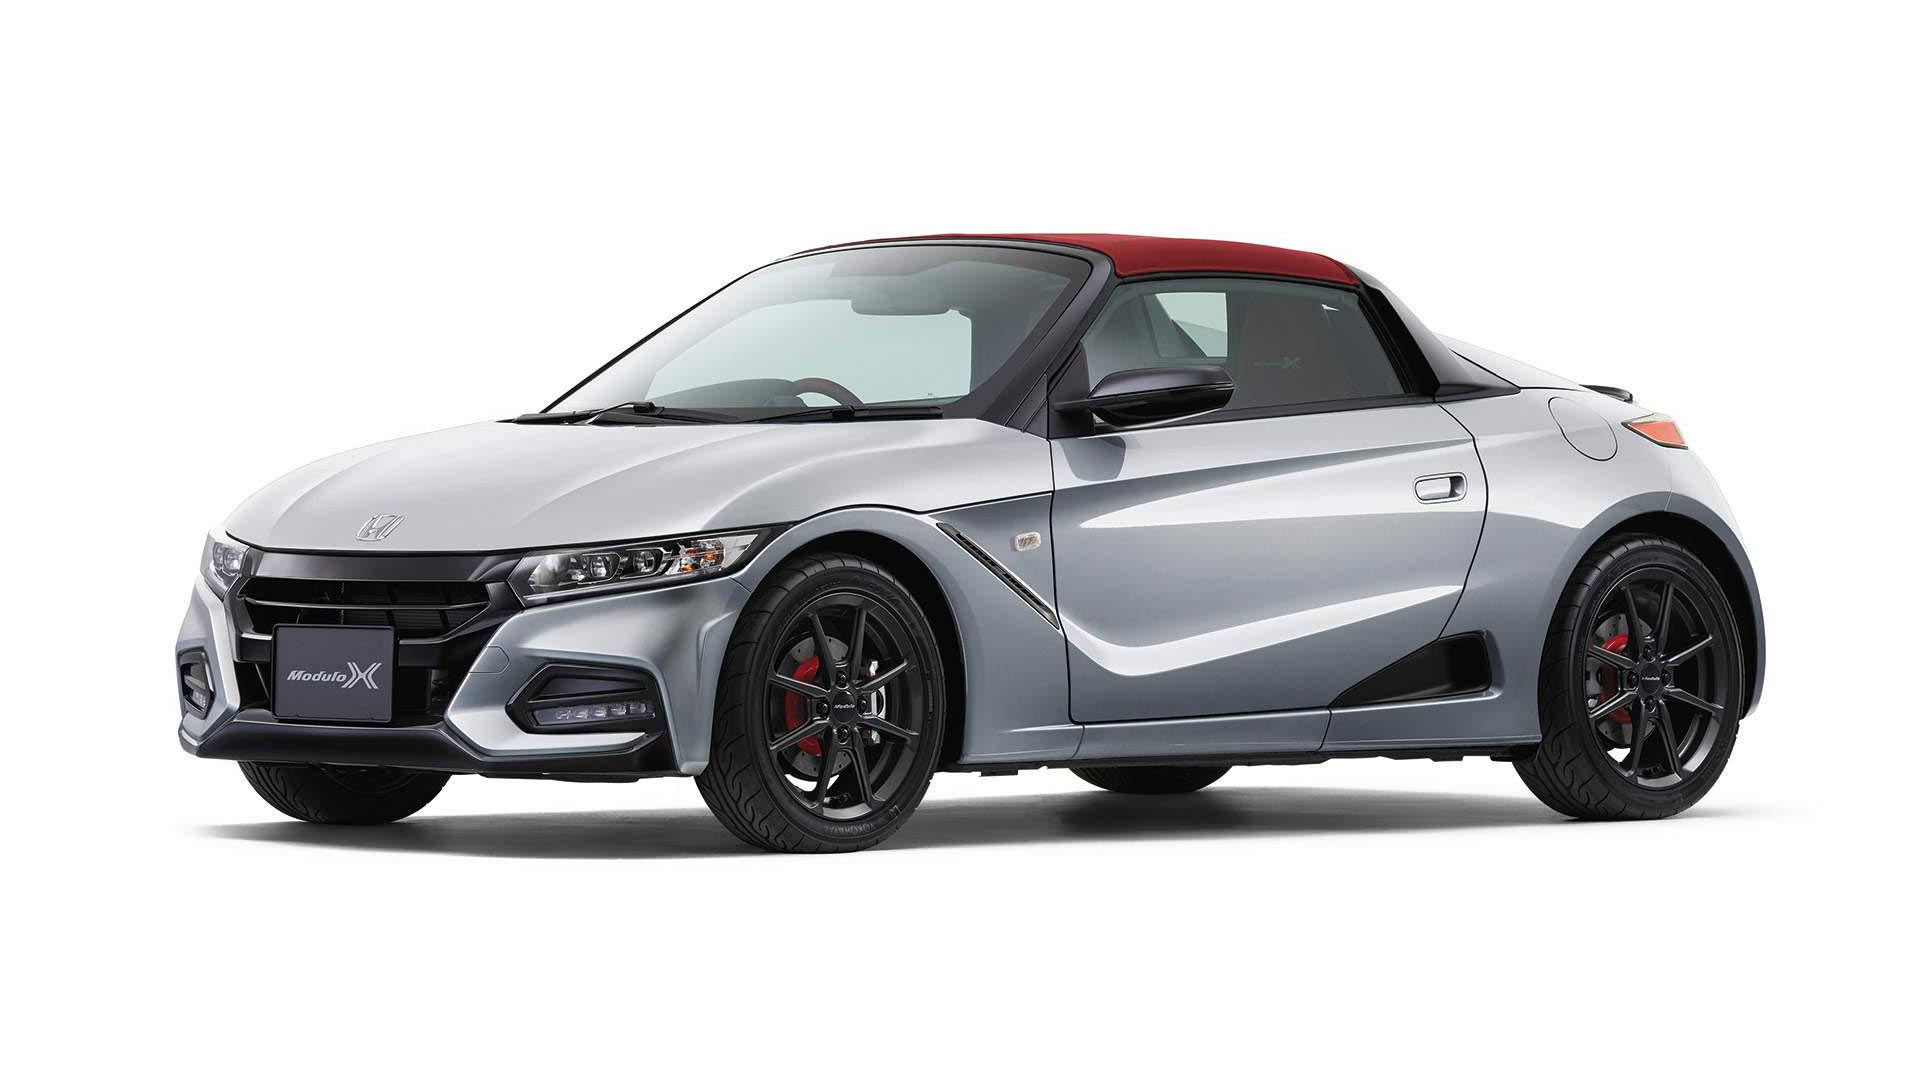 Honda S660 Modulo X Revealed For Japan Autodevot